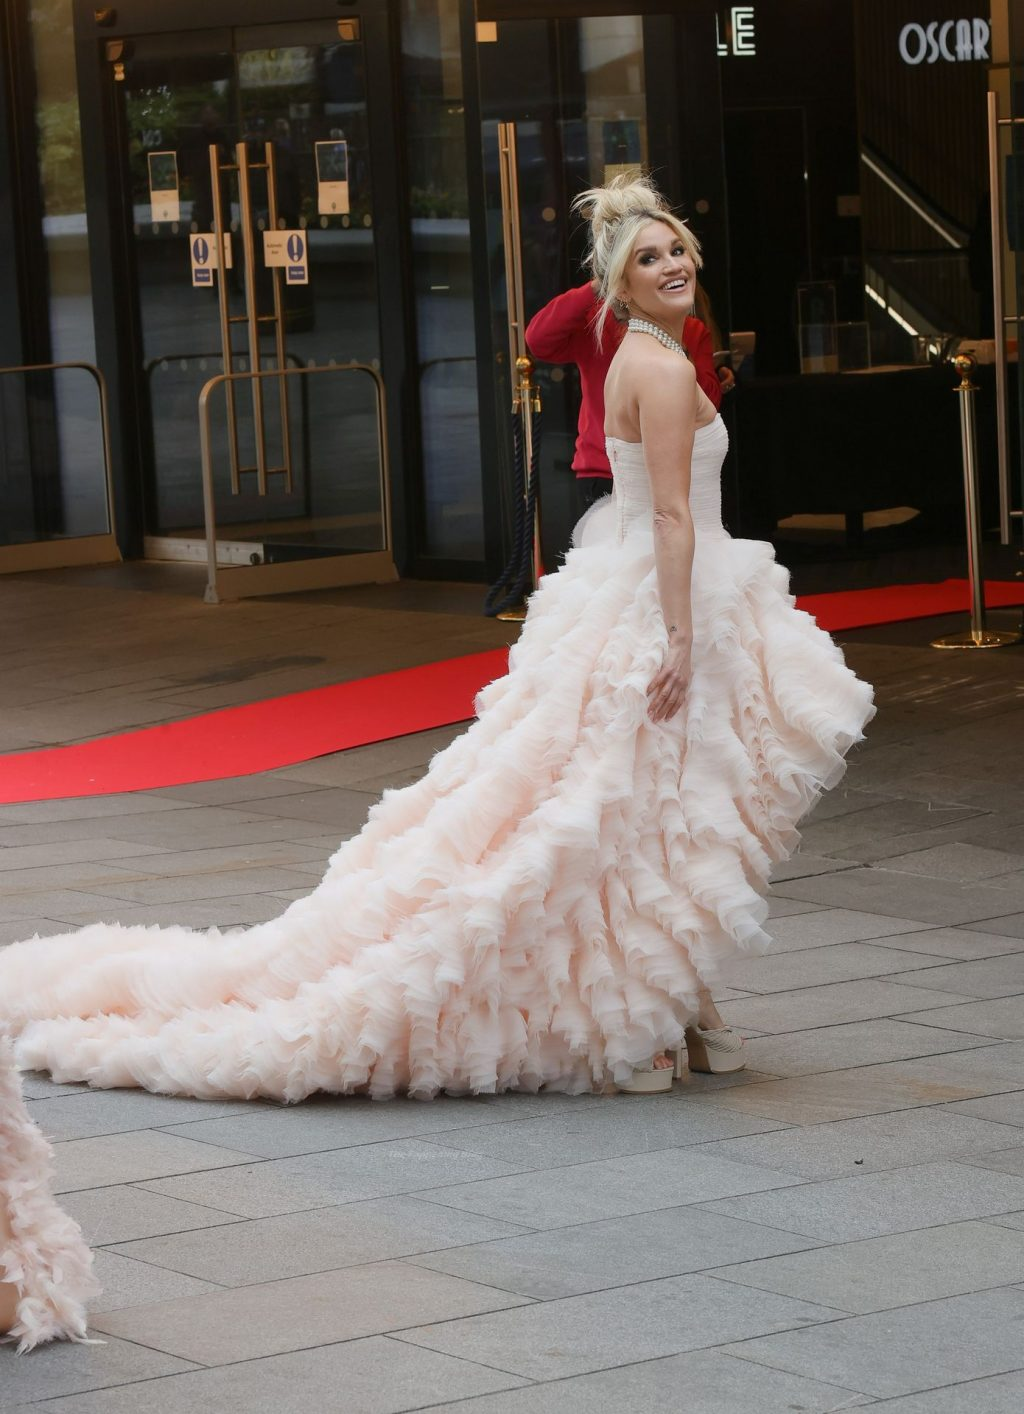 Amanda Holden & Ashley Roberts Visit The Odeon Cinema London's Leicester Square (52 Photos)